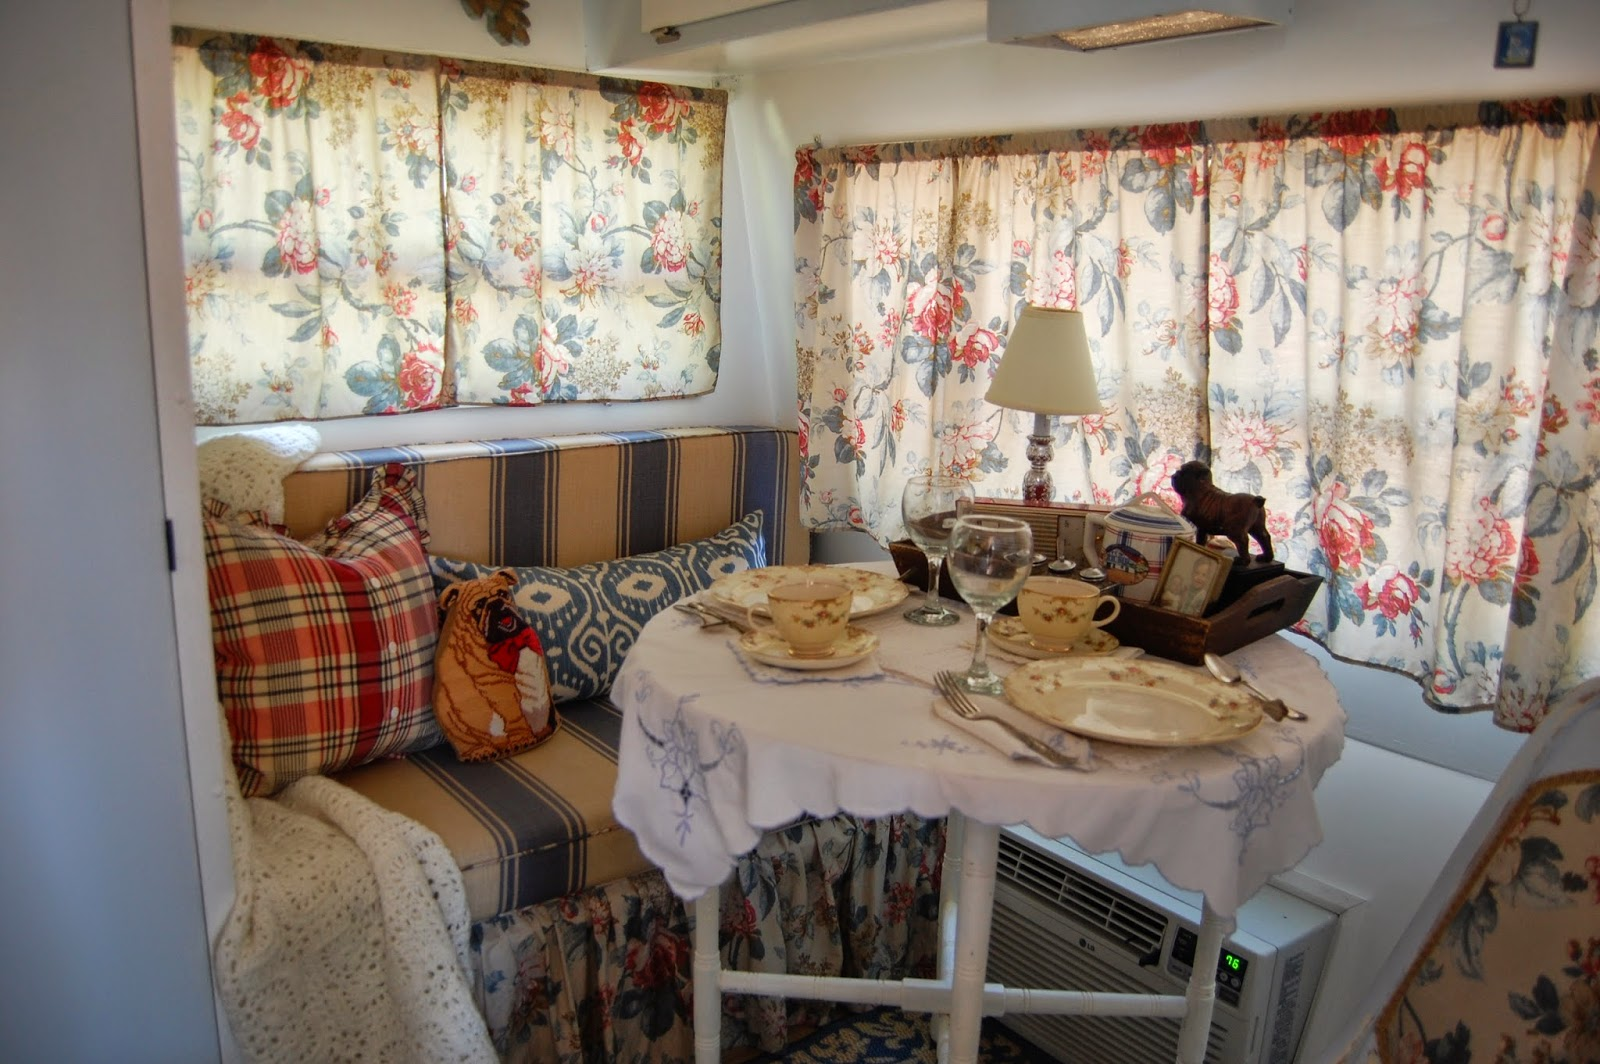 Travel trailer decor 28 images travel trailer Travel trailer decorating ideas